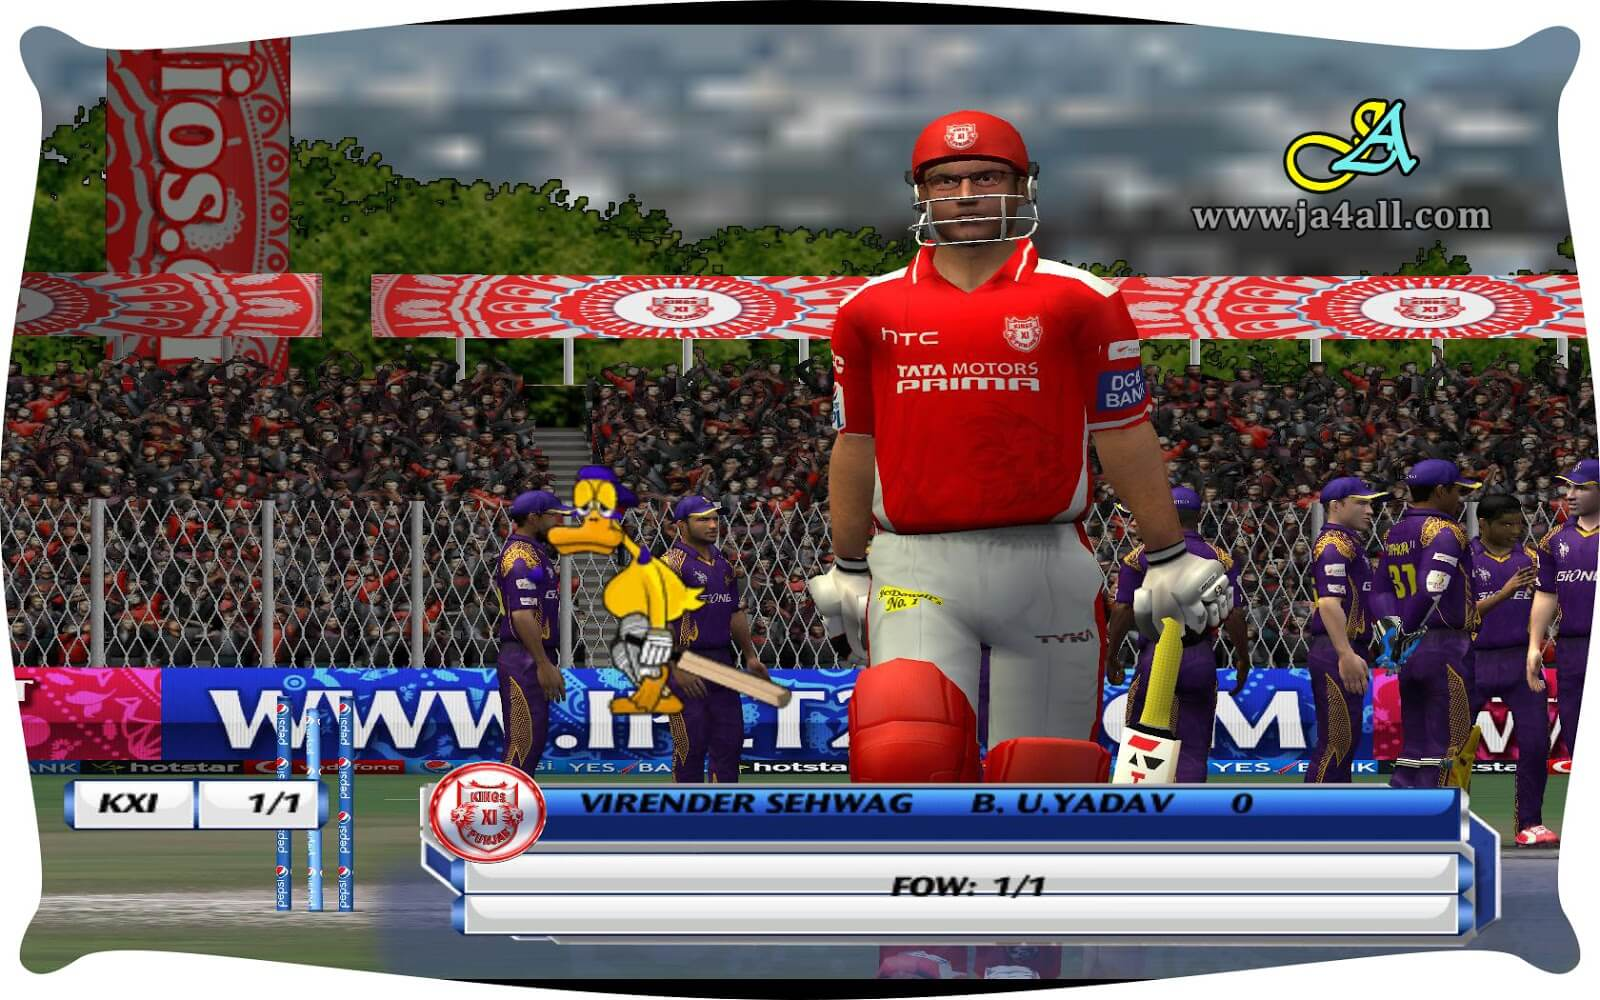 how to add ipl patch in cricket 07 - YouTube